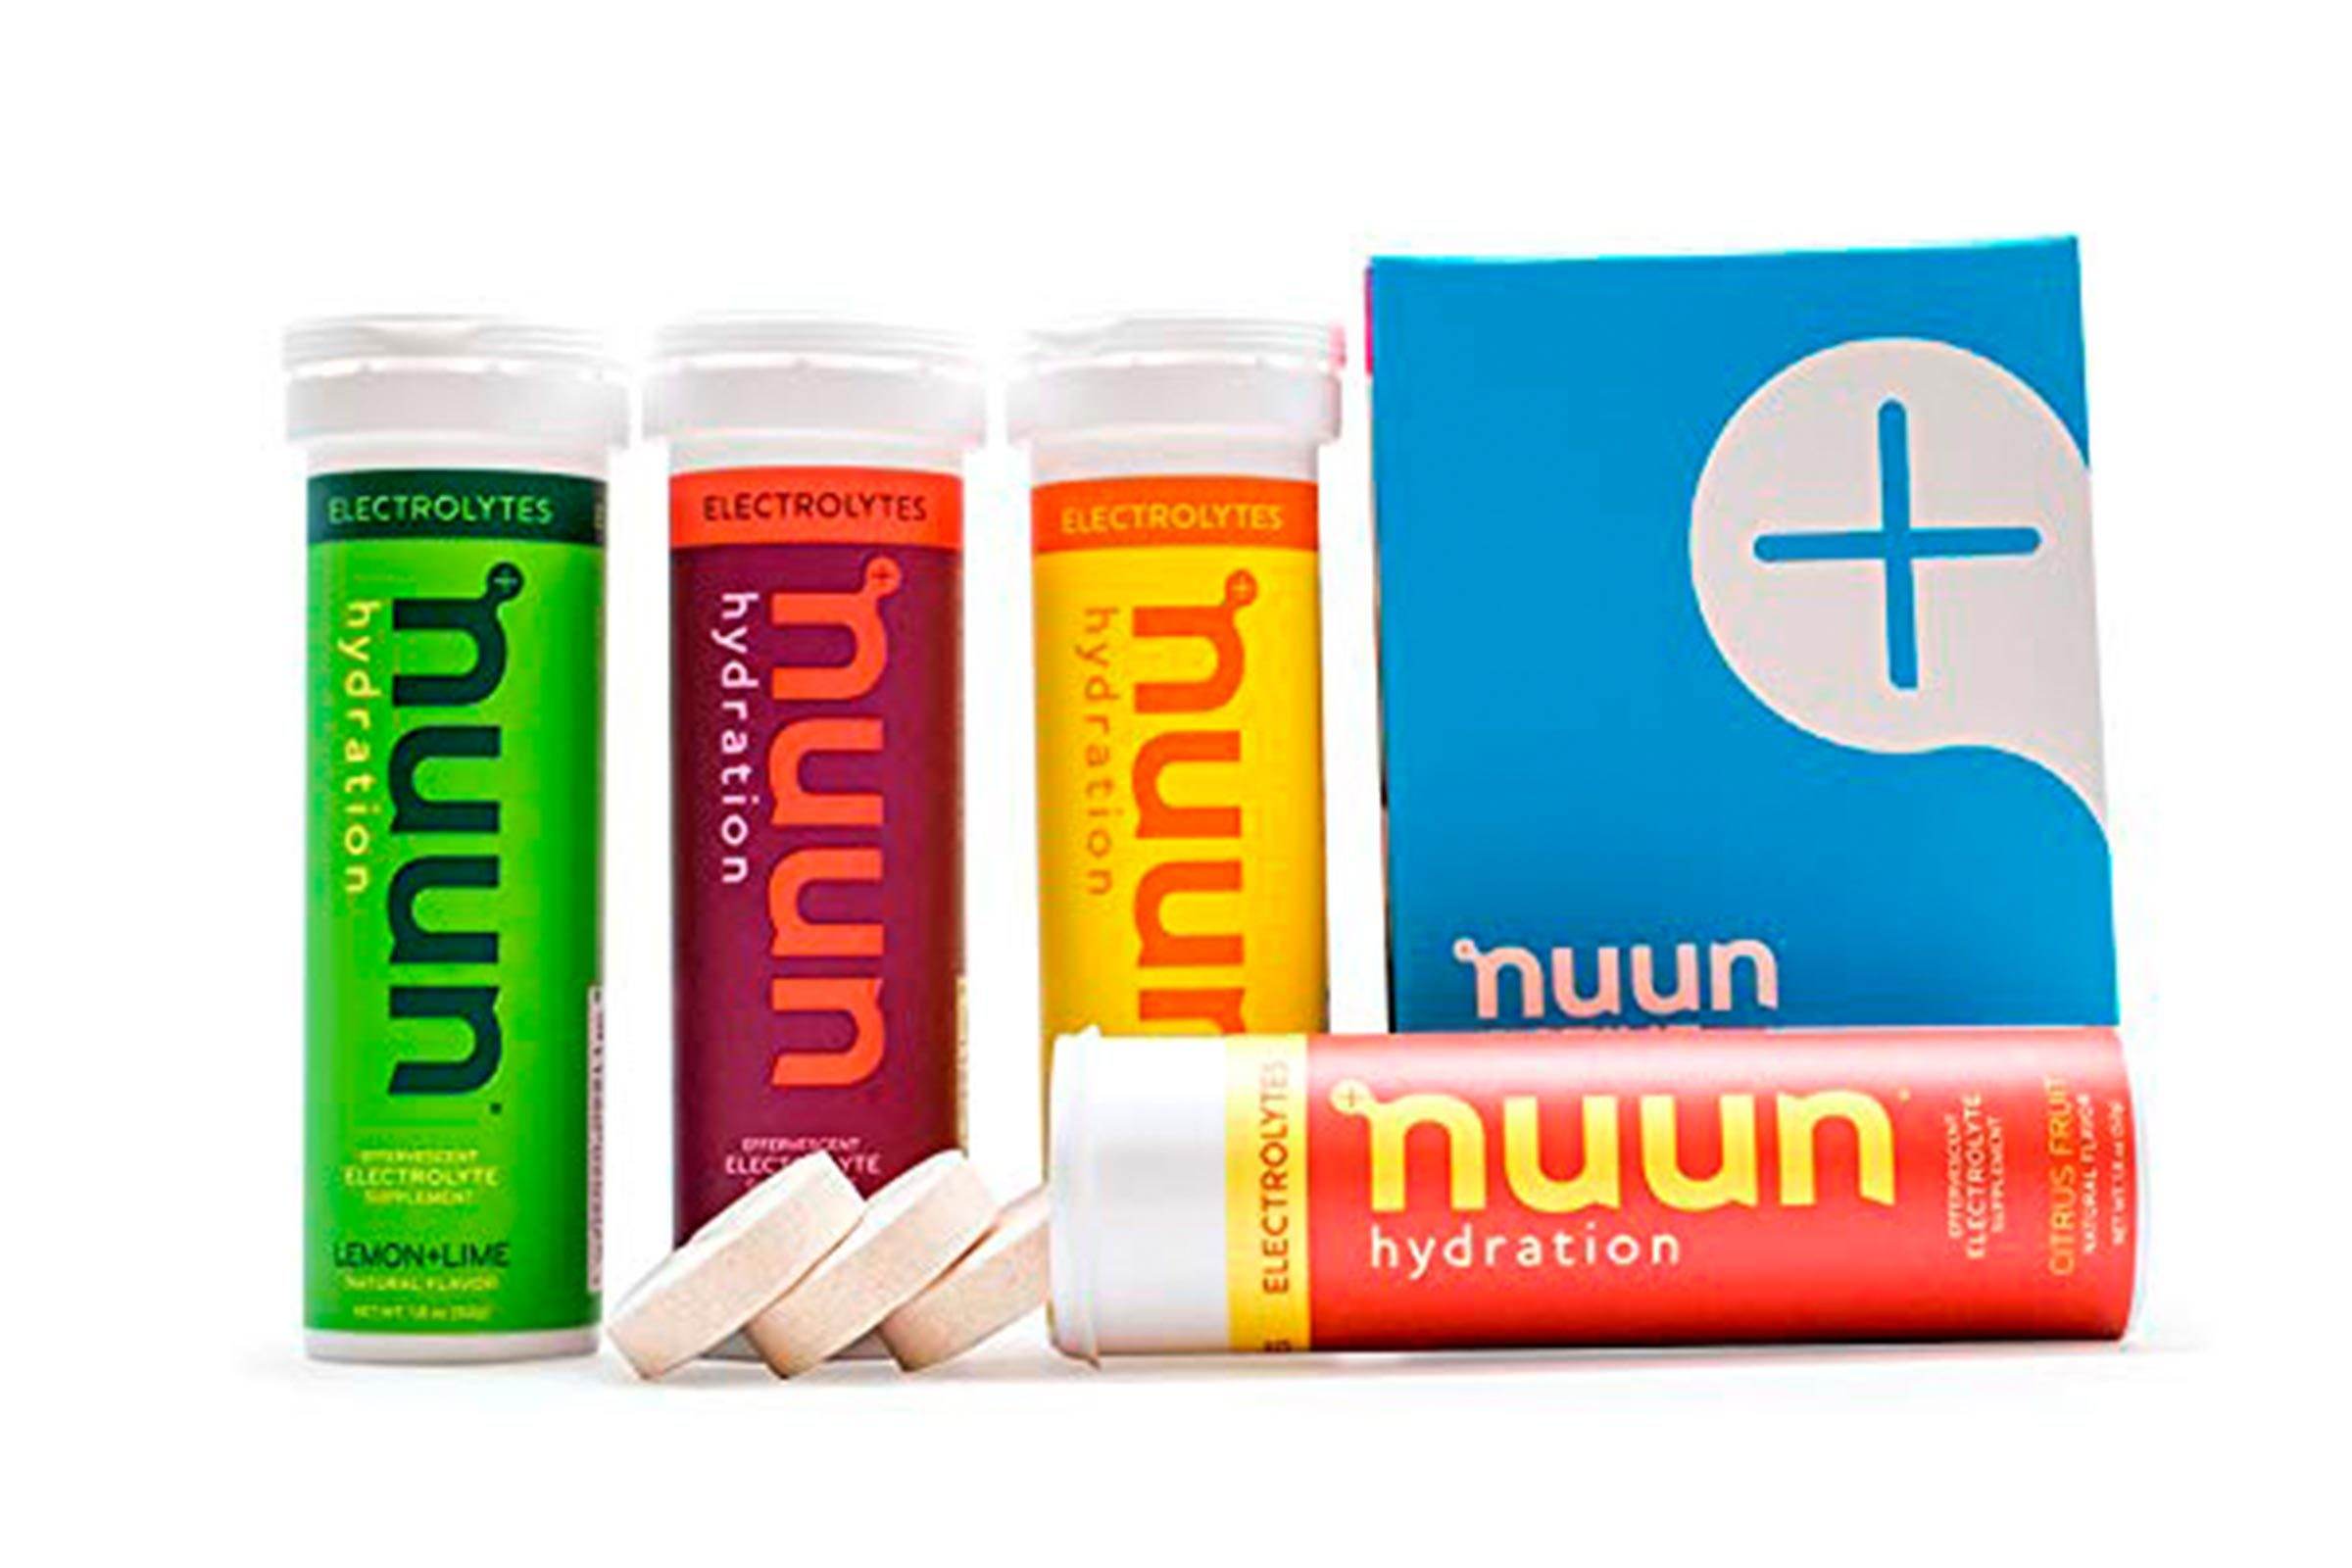 Nuun Hydration electrolyte drink tablets